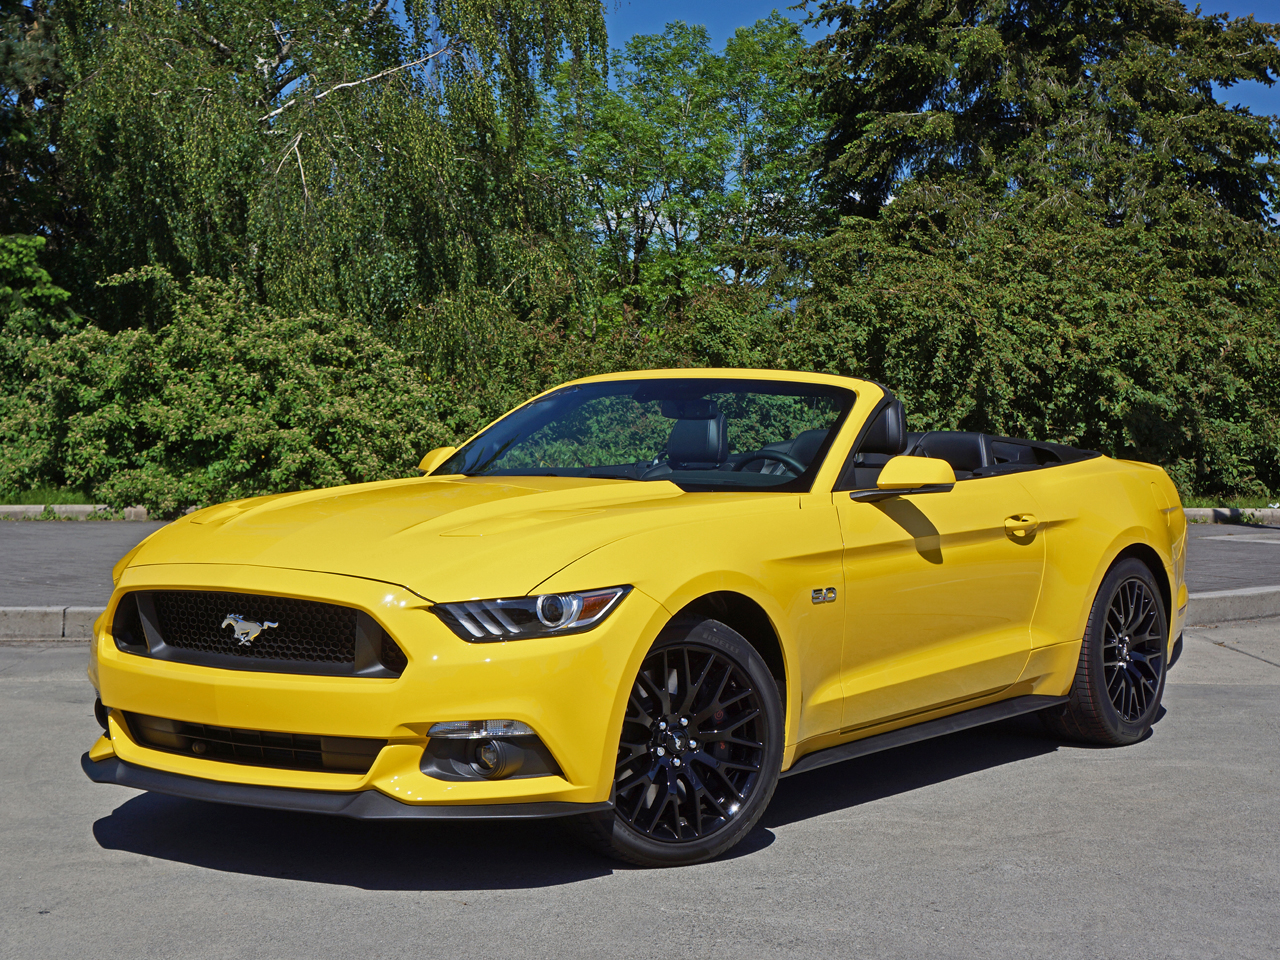 2016 ford mustang gt convertible road test review. Black Bedroom Furniture Sets. Home Design Ideas